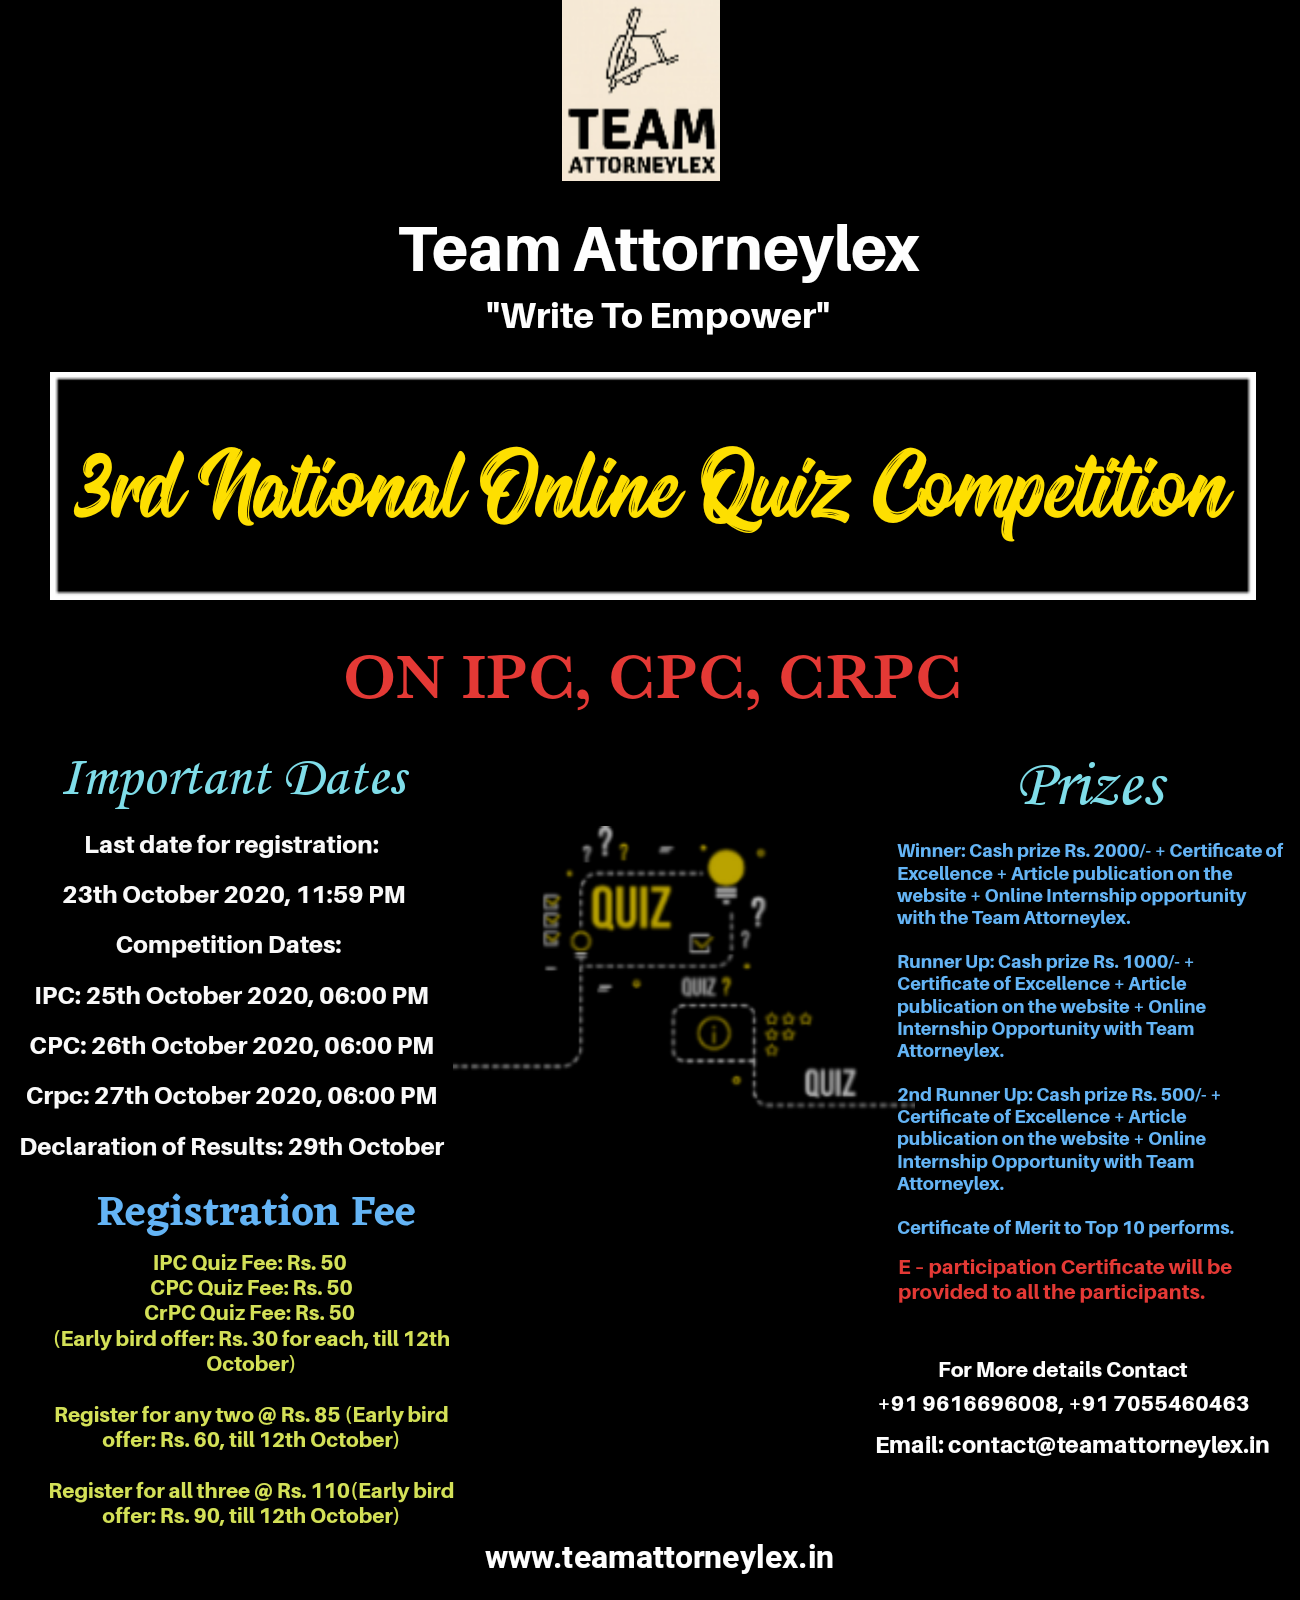 3rd Online National Quiz Competition | Team AttorneyLex: